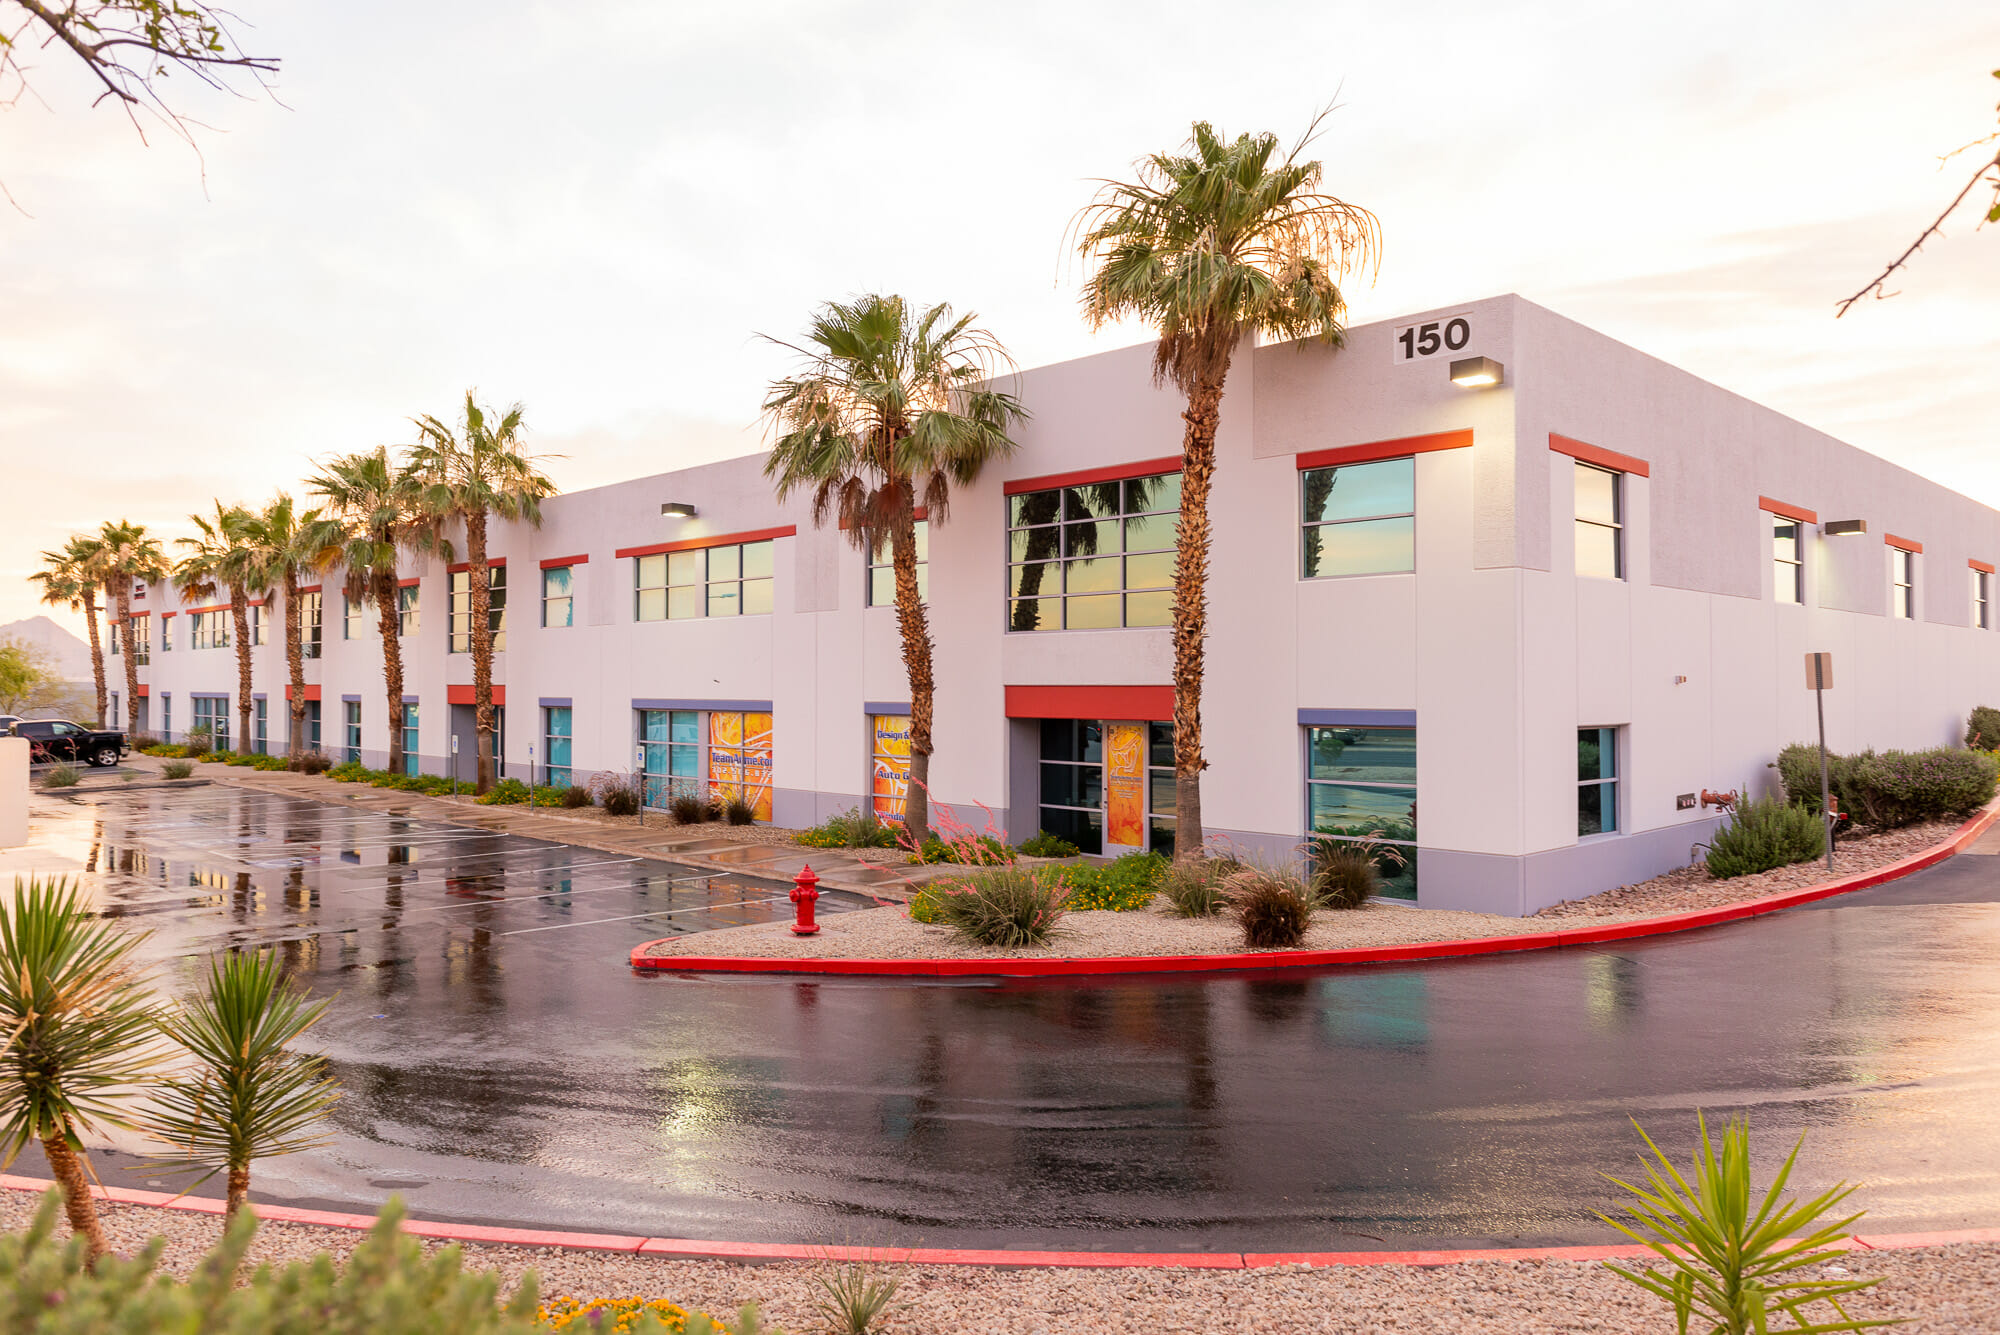 Consisting of over 32,000 SF of office and warehouse space, 150 North Gibson Road offers nearby access to I-215 and great visibility in Henderson, Nevada.